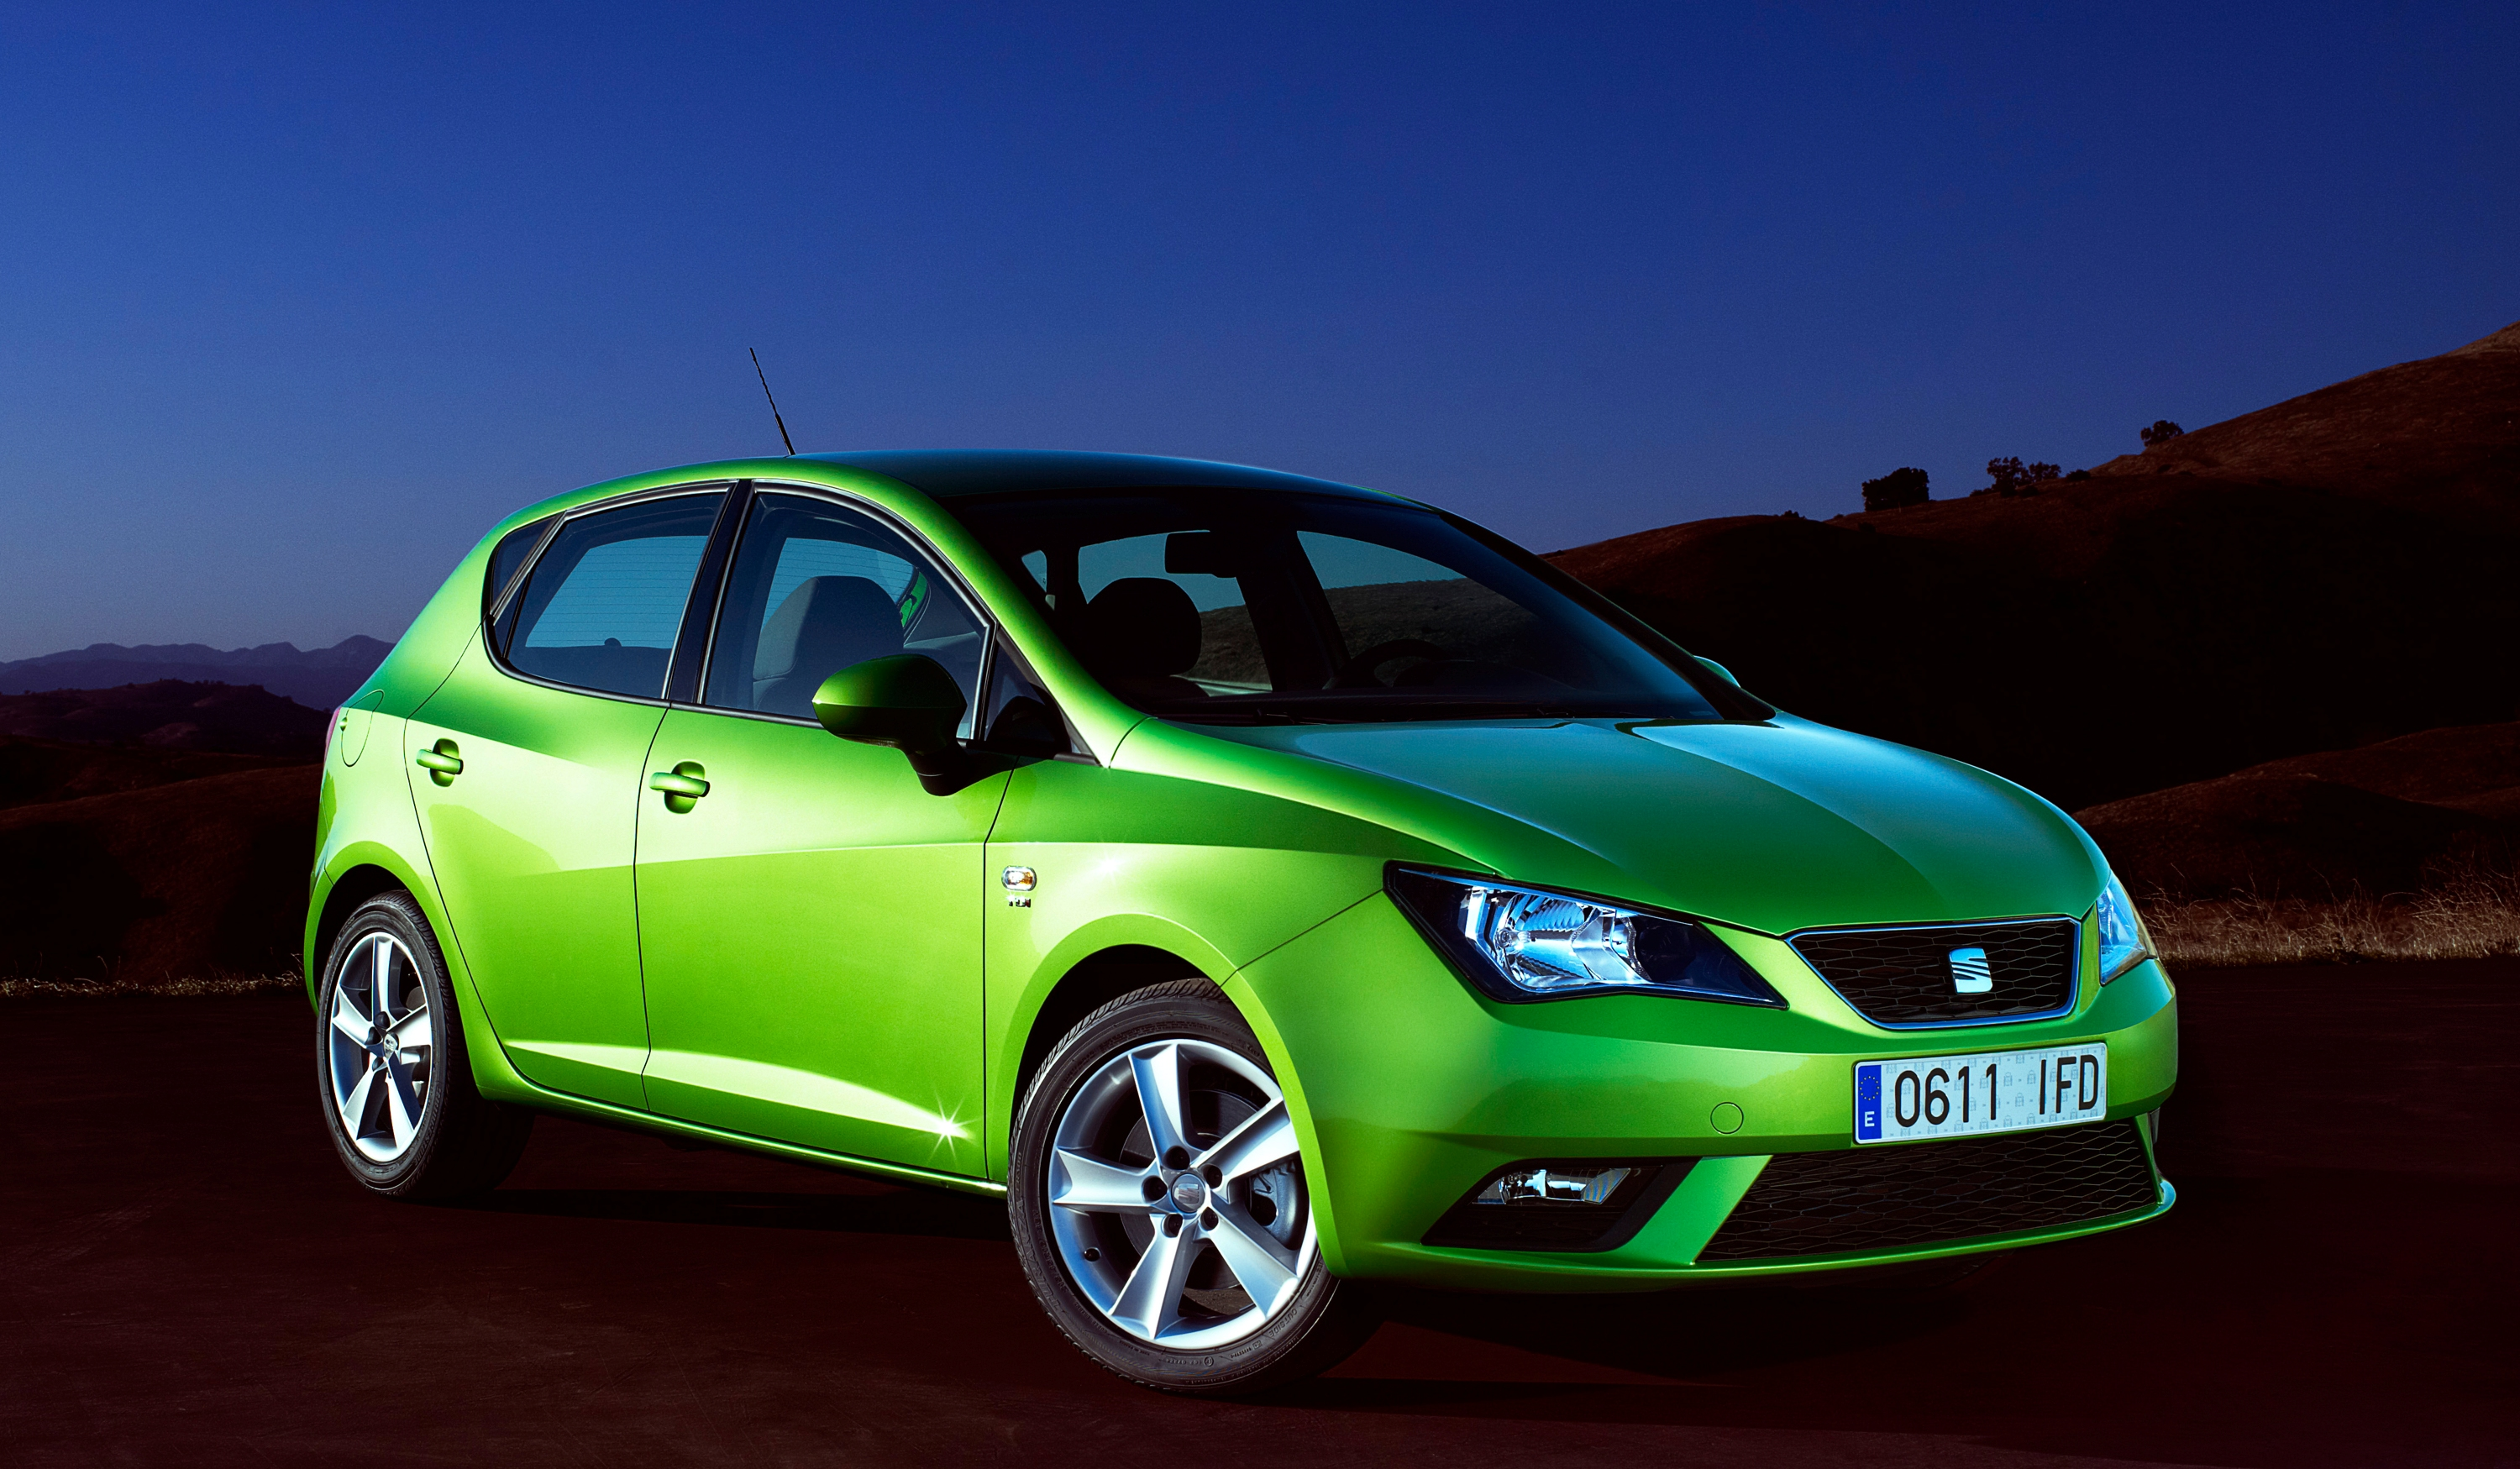 new seat ibiza fr 2 0 tdi car write upscar write ups. Black Bedroom Furniture Sets. Home Design Ideas